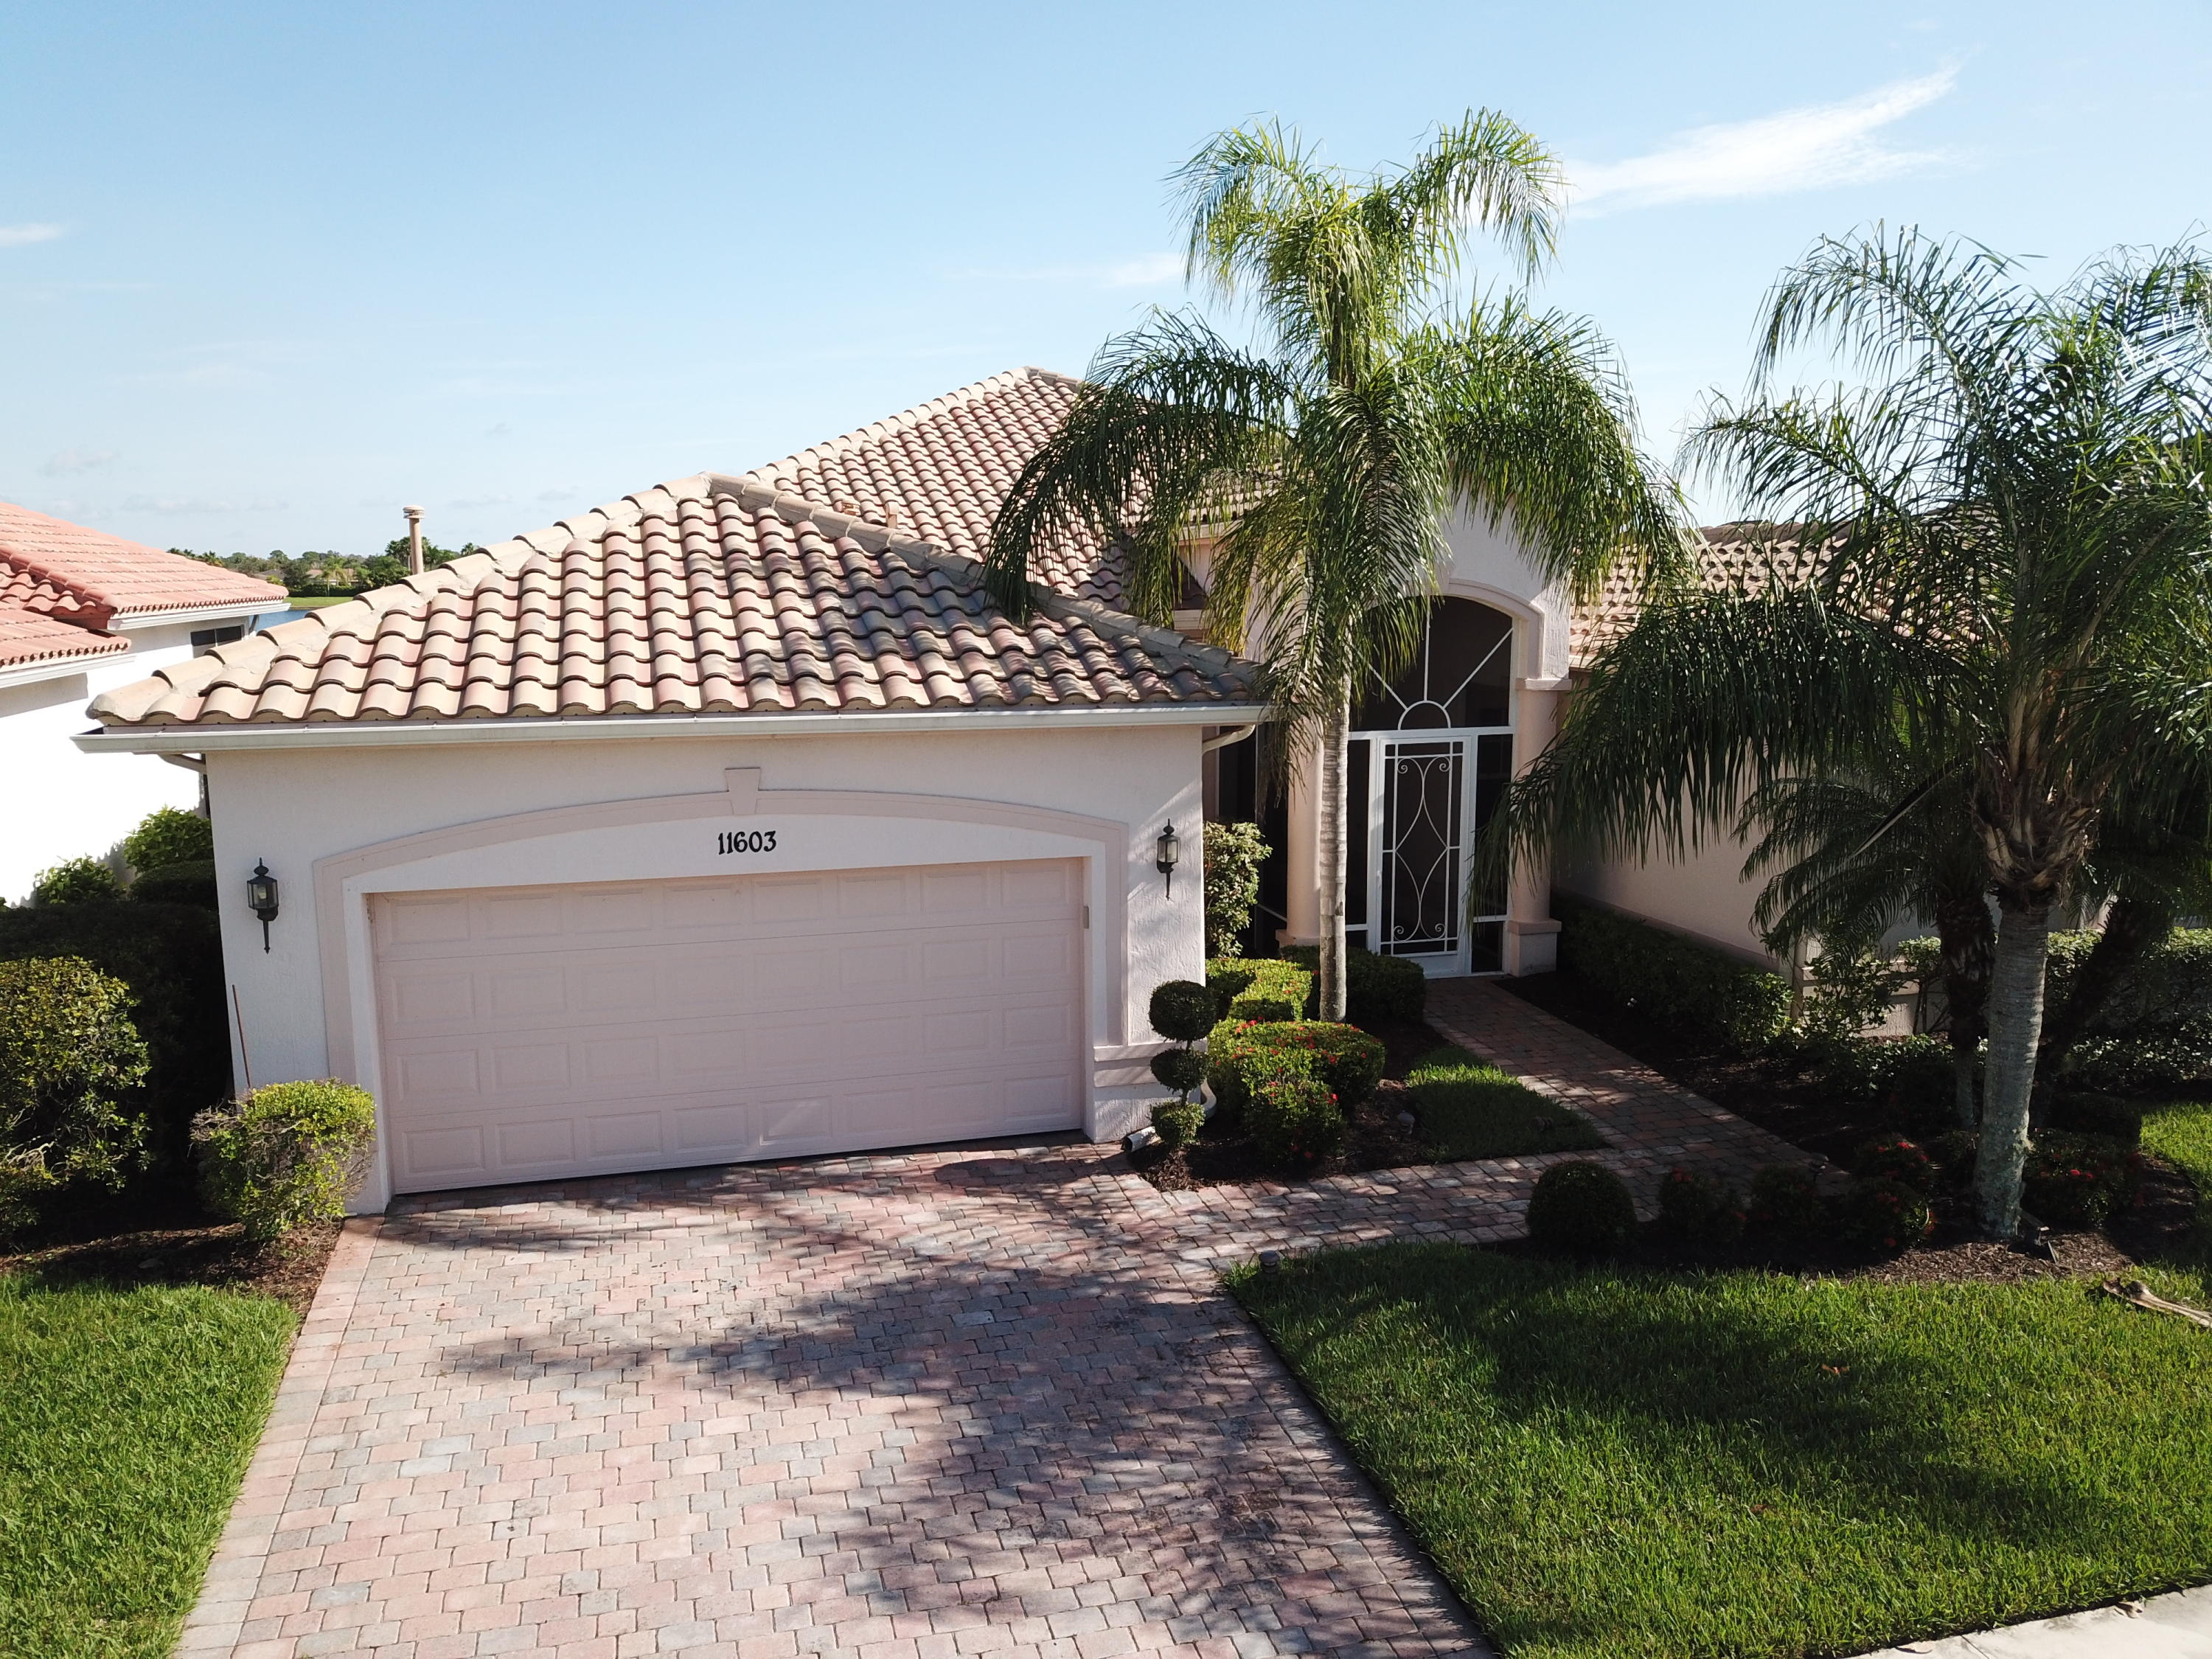 11603 Sw Apple Blossom Trail, Port Saint Lucie, FL 34987